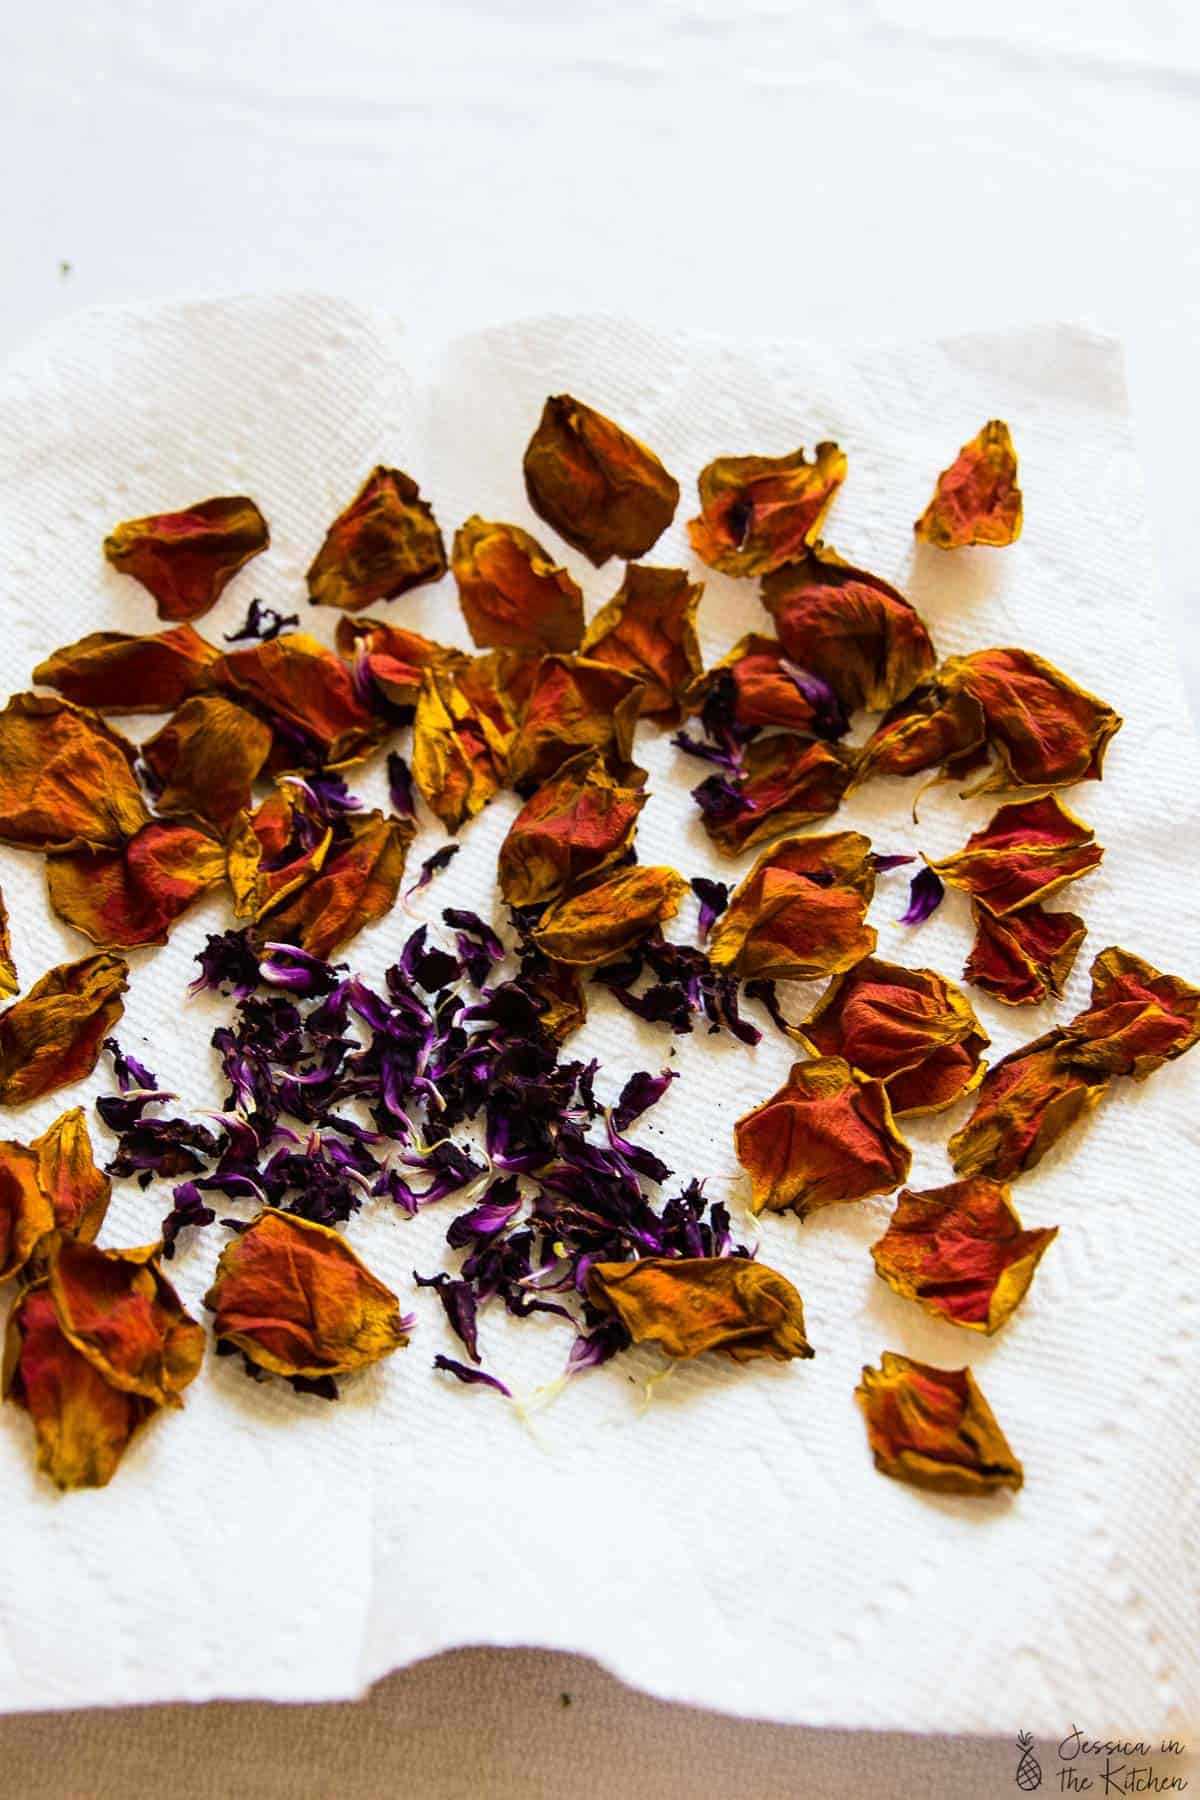 Top down shot of dried petals on a kitchen towel.